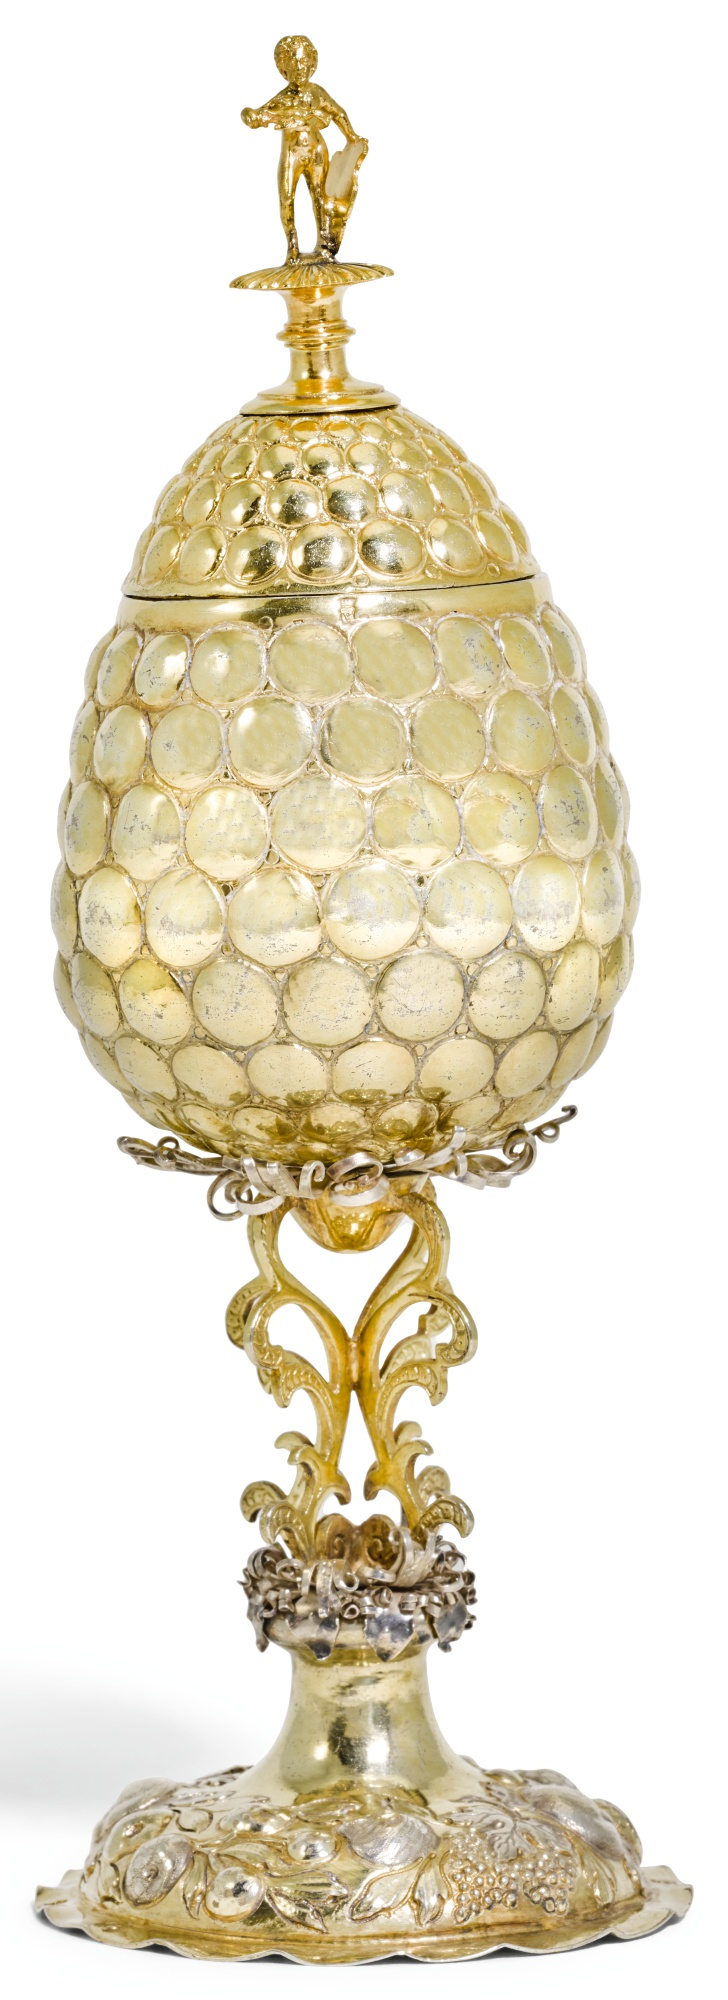 A GERMAN SILVER-GILT FRUIT-SHAPED CUP AND COVER, THE FOOT MARKED FOR CHRISTIAN HORNUNG, AUGSBURG, CIRCA 1680